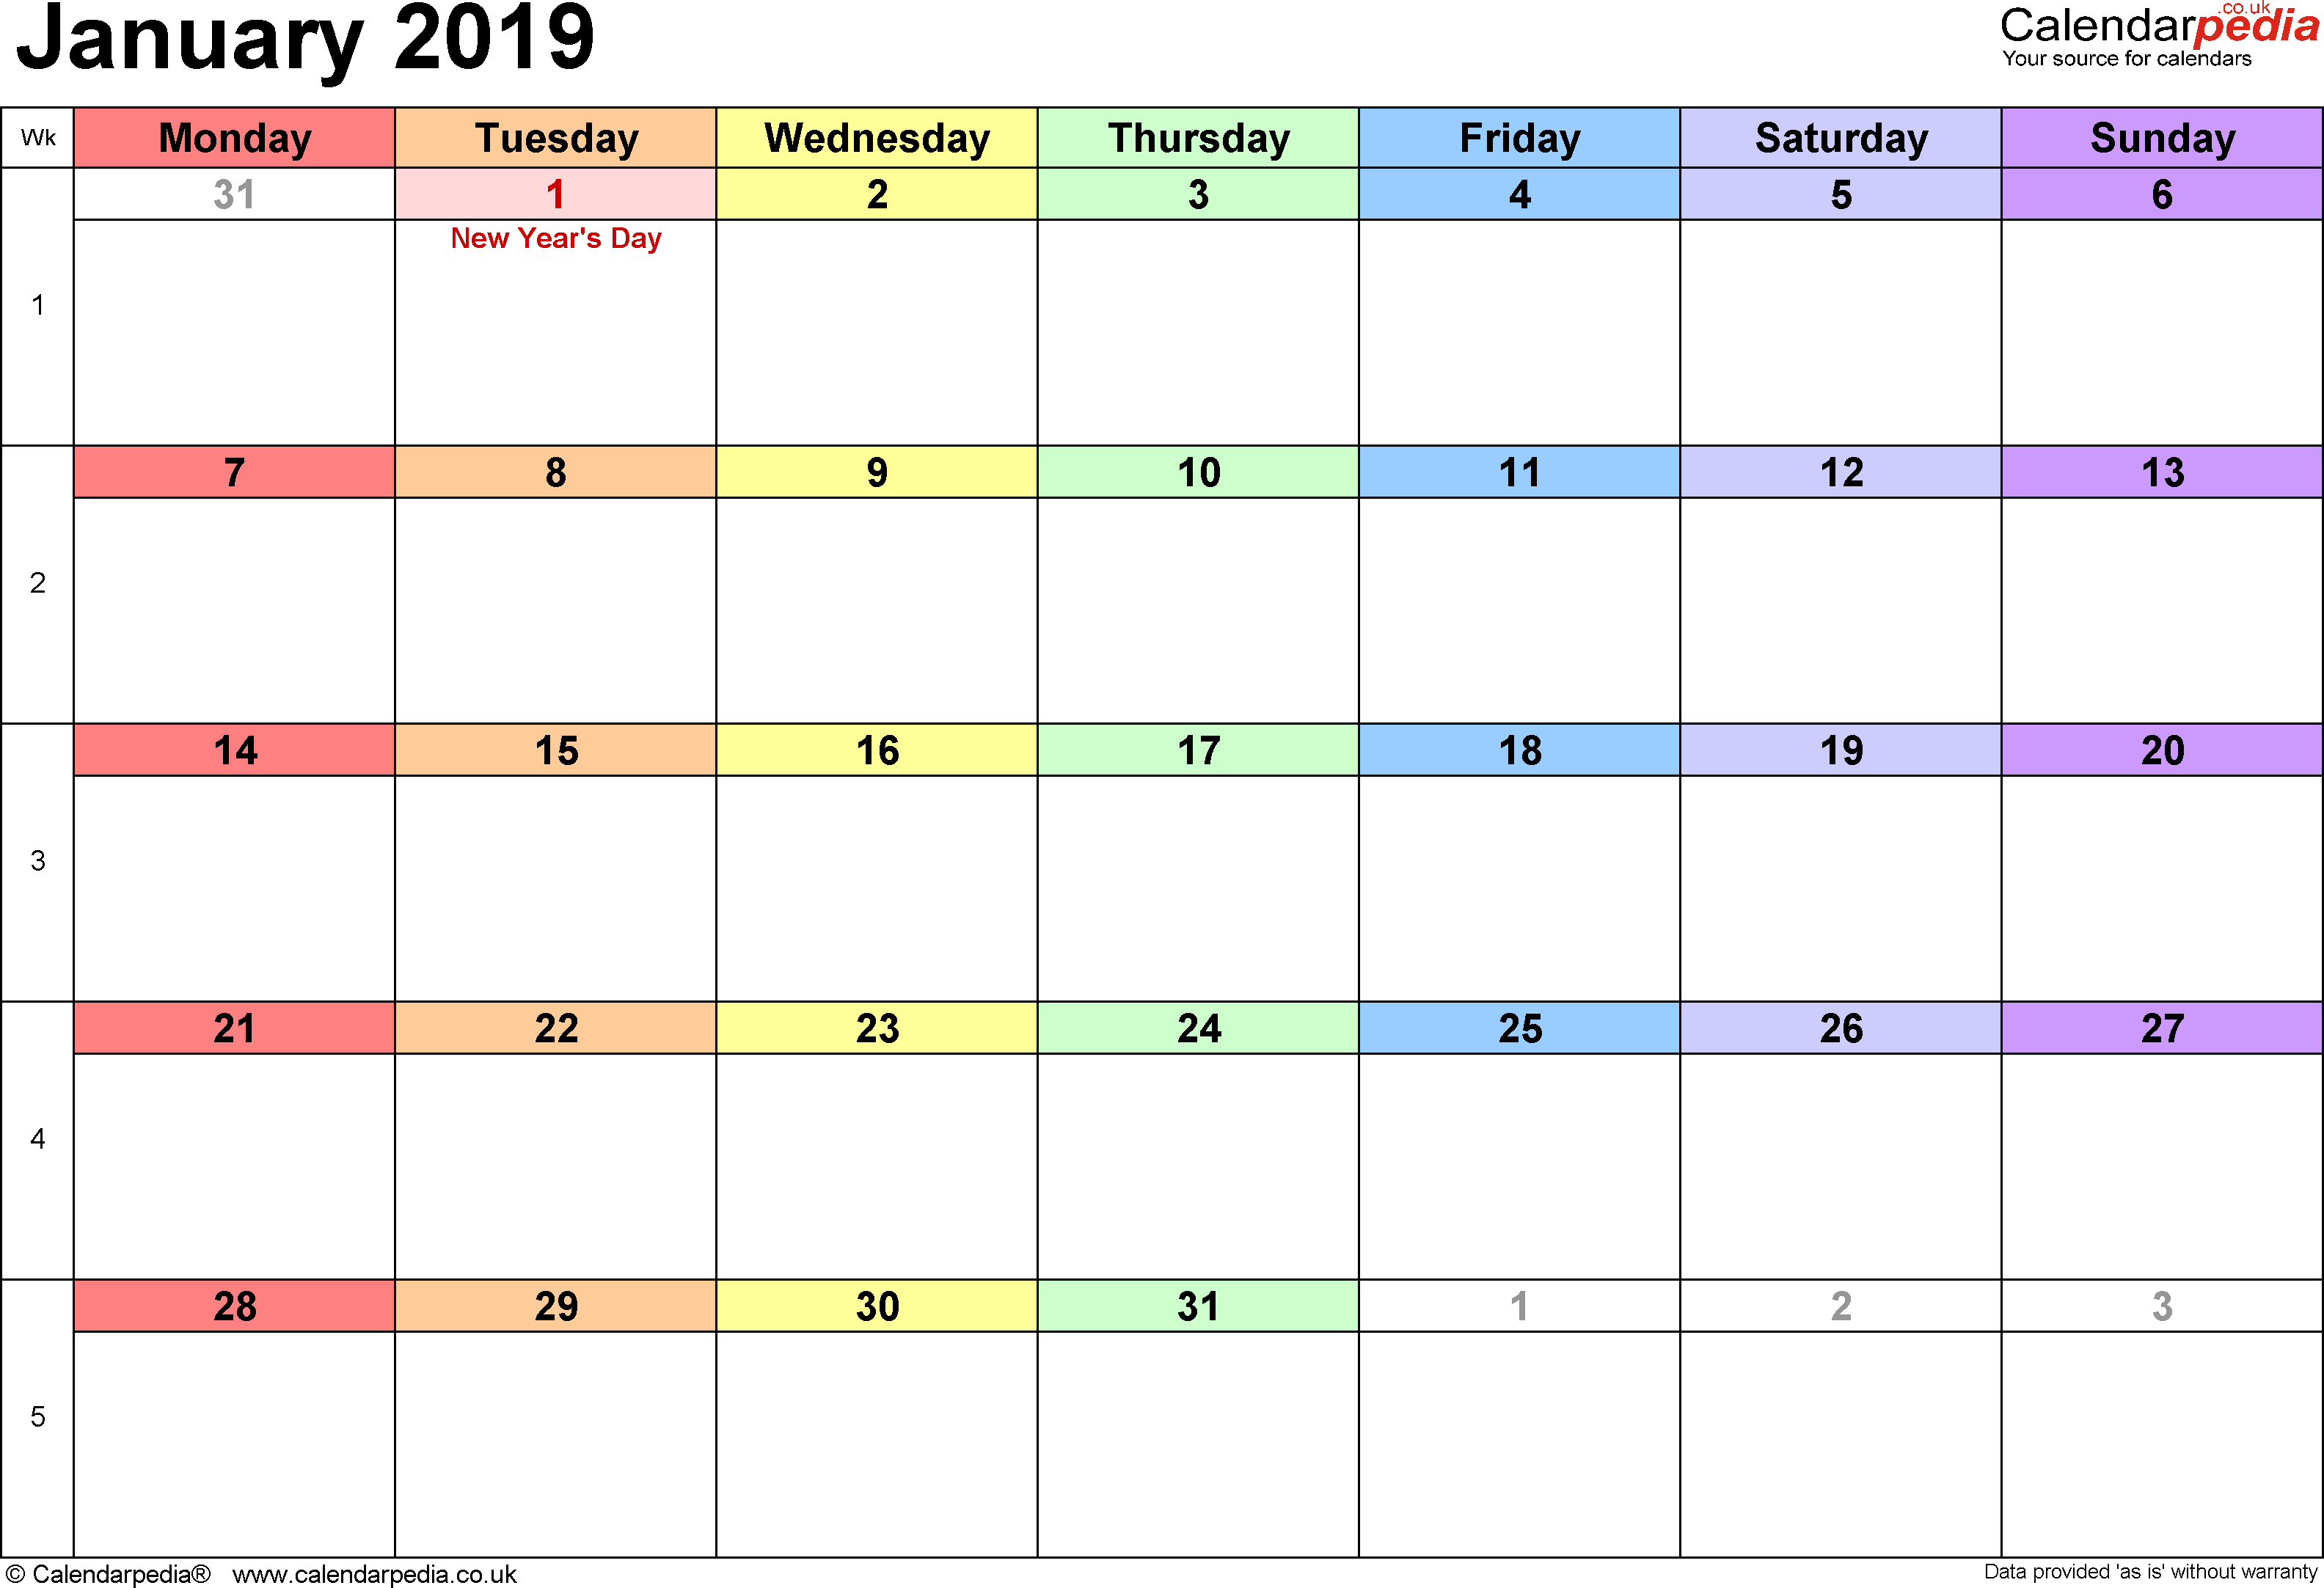 Calendar January 2019, landscape orientation, 1 page, with UK bank holidays and week numbers